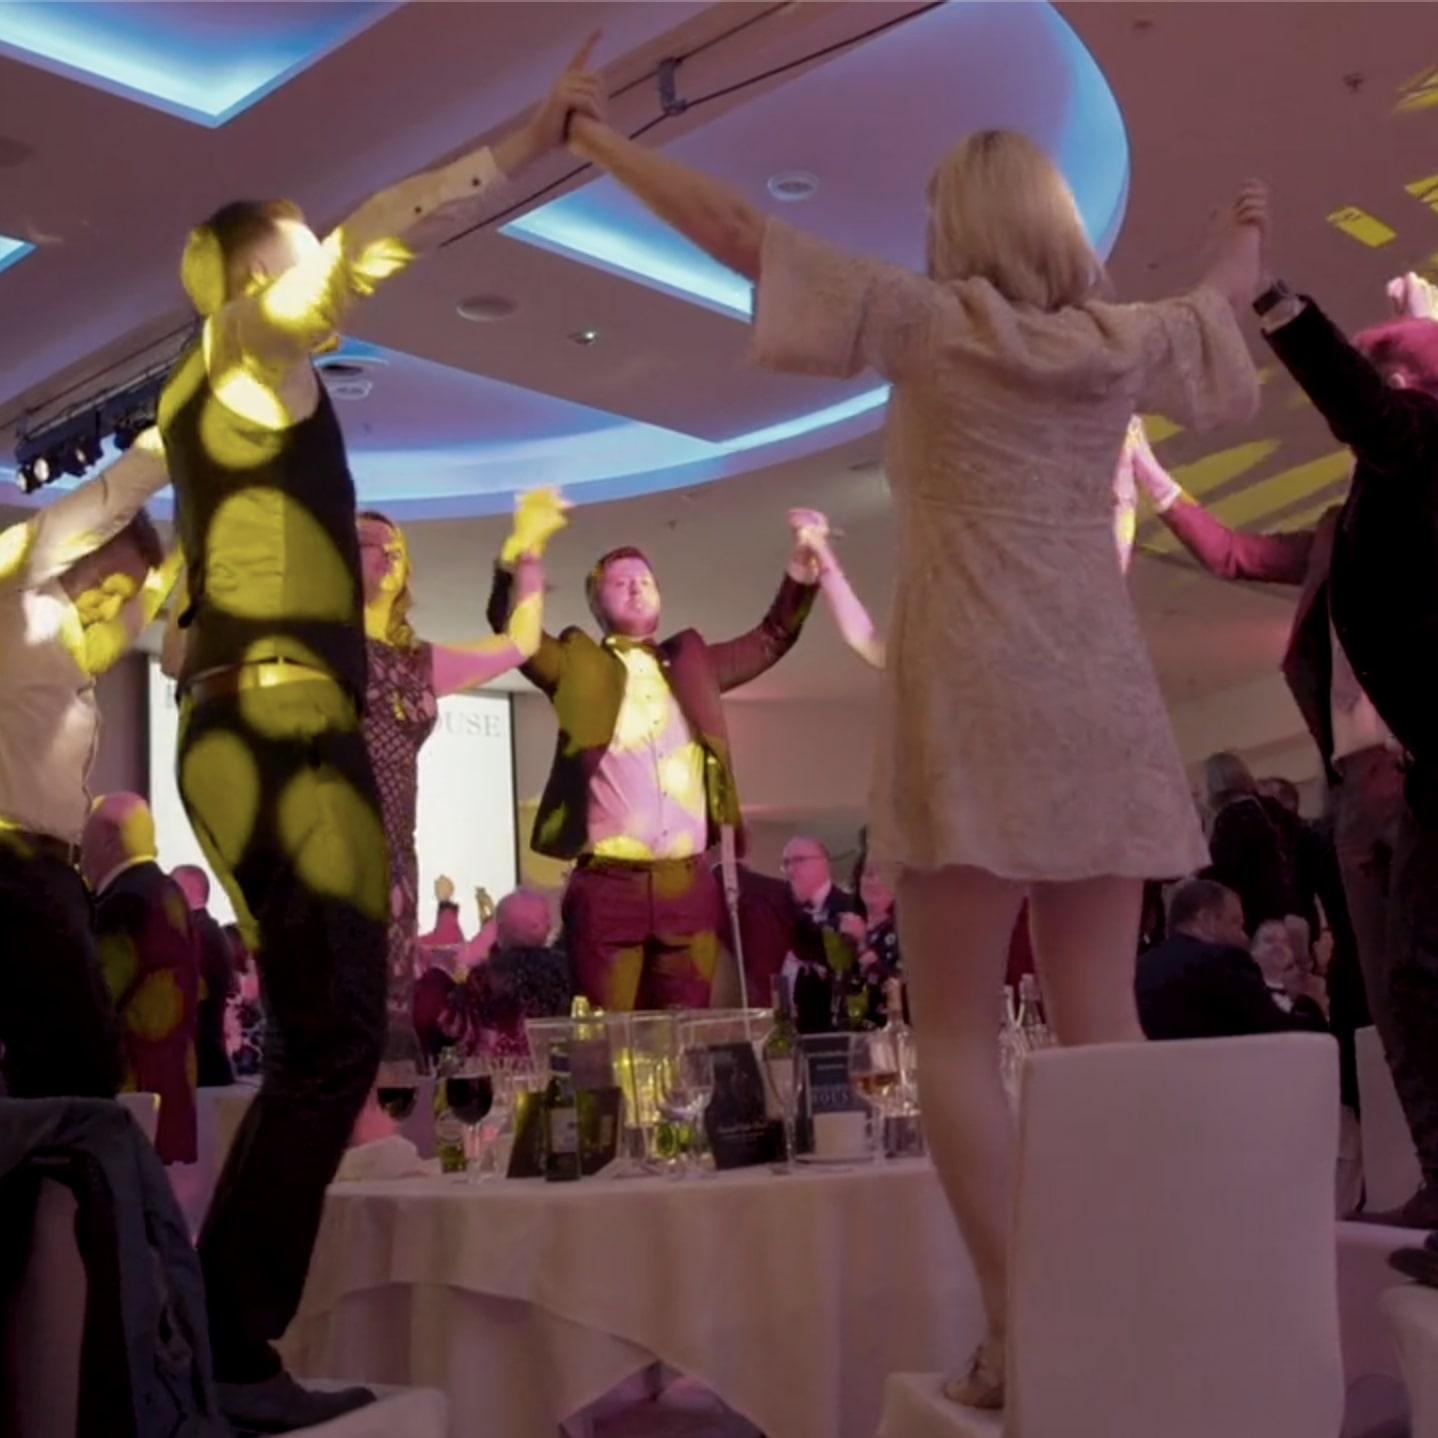 People standing on chairs, dancing